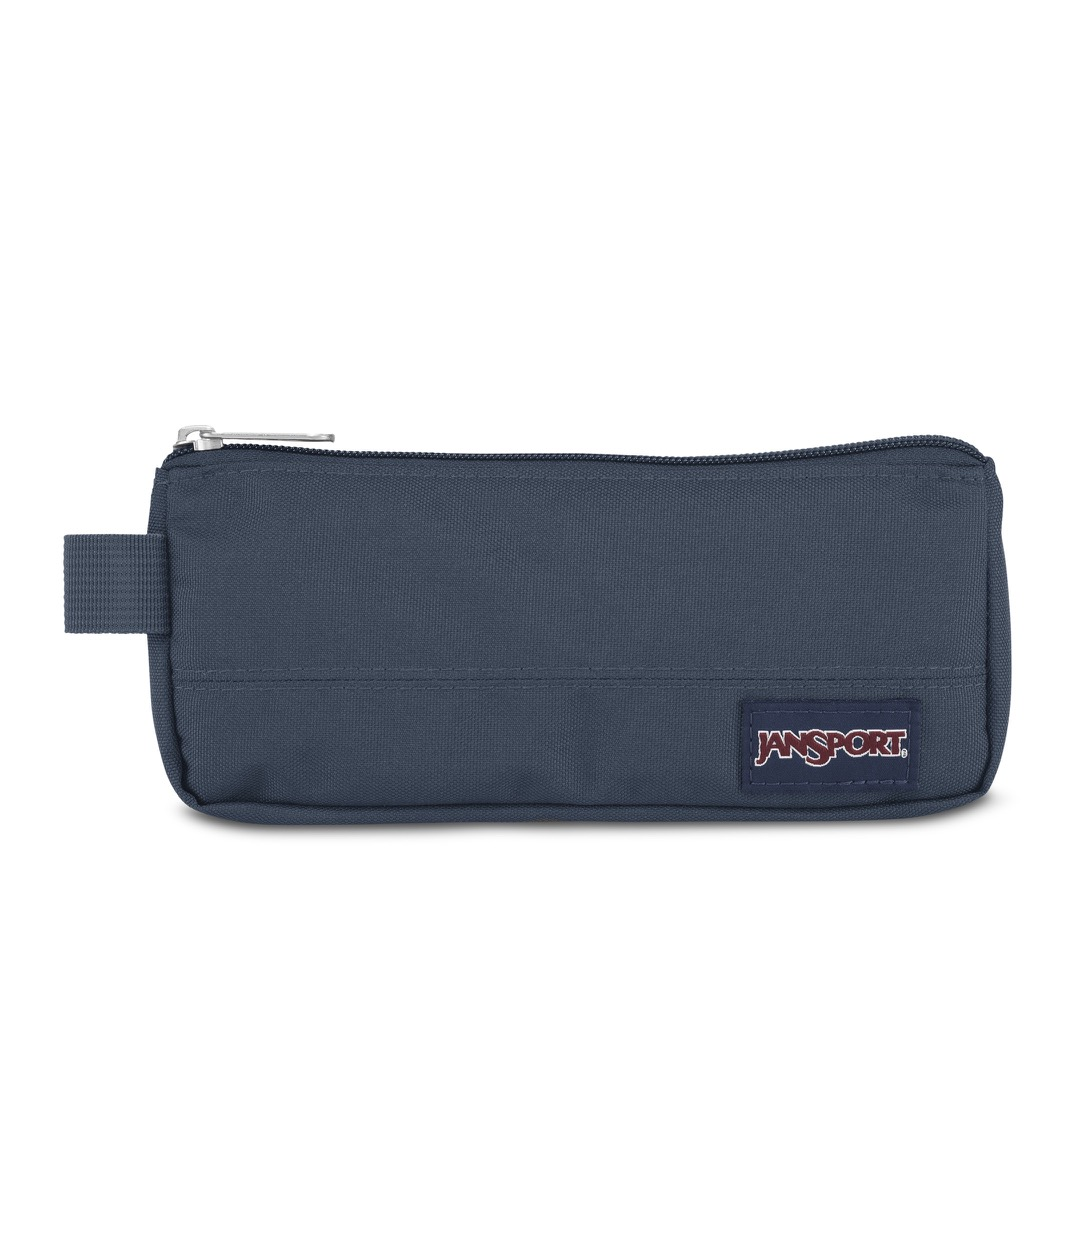 BASIC ACCESSORY POUCH - NAVY